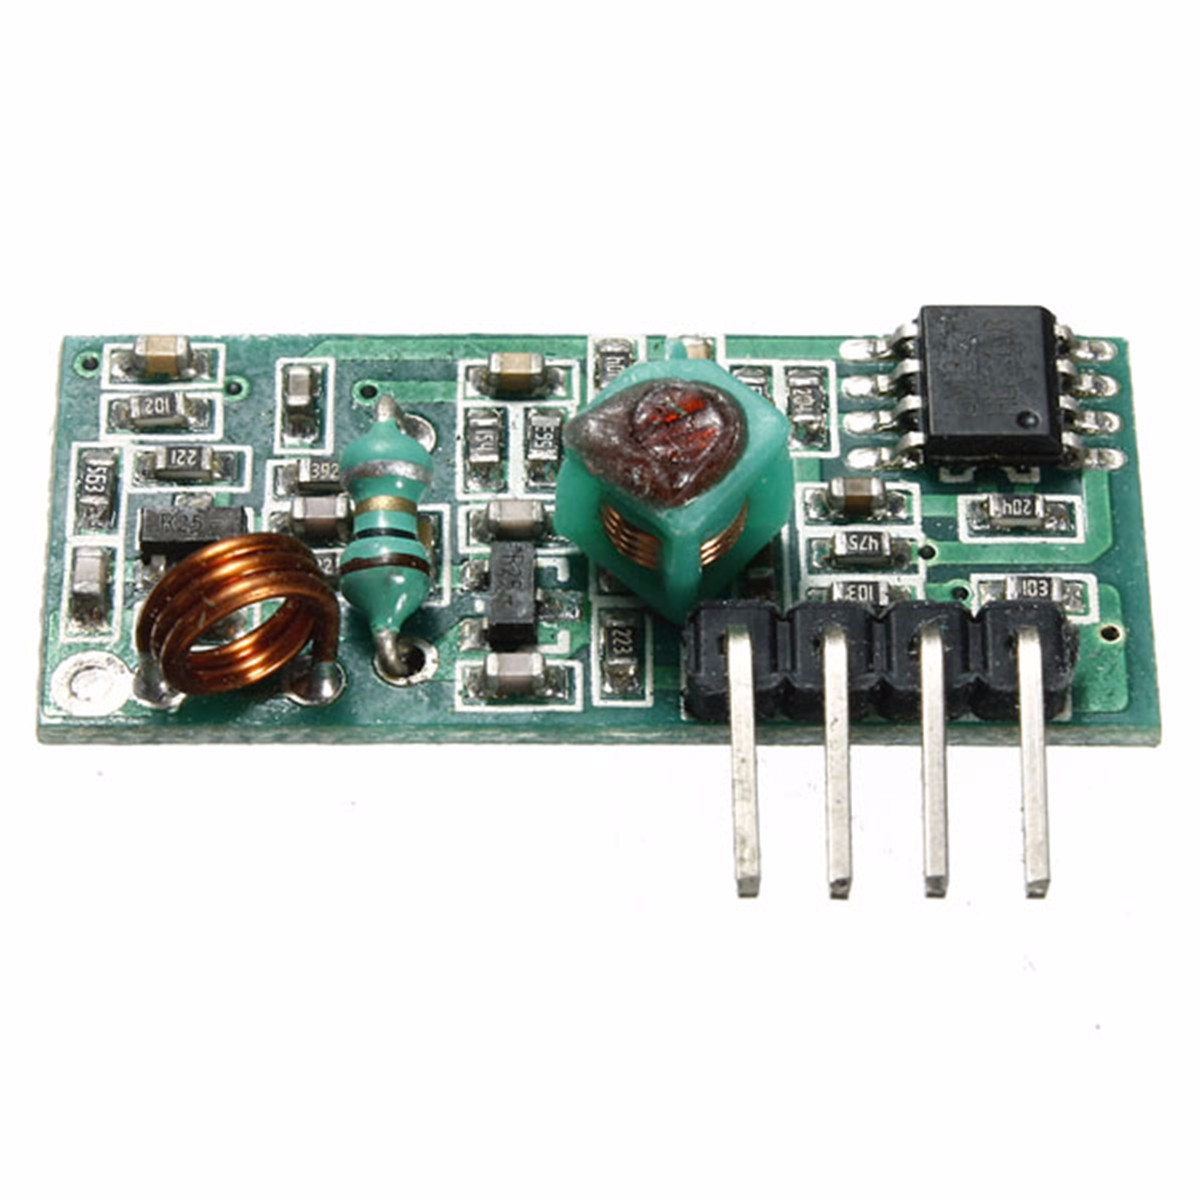 433mhz Rf Decoder Transmitter With Receiver Module Kit For Arduino Circuit Shipping Methods